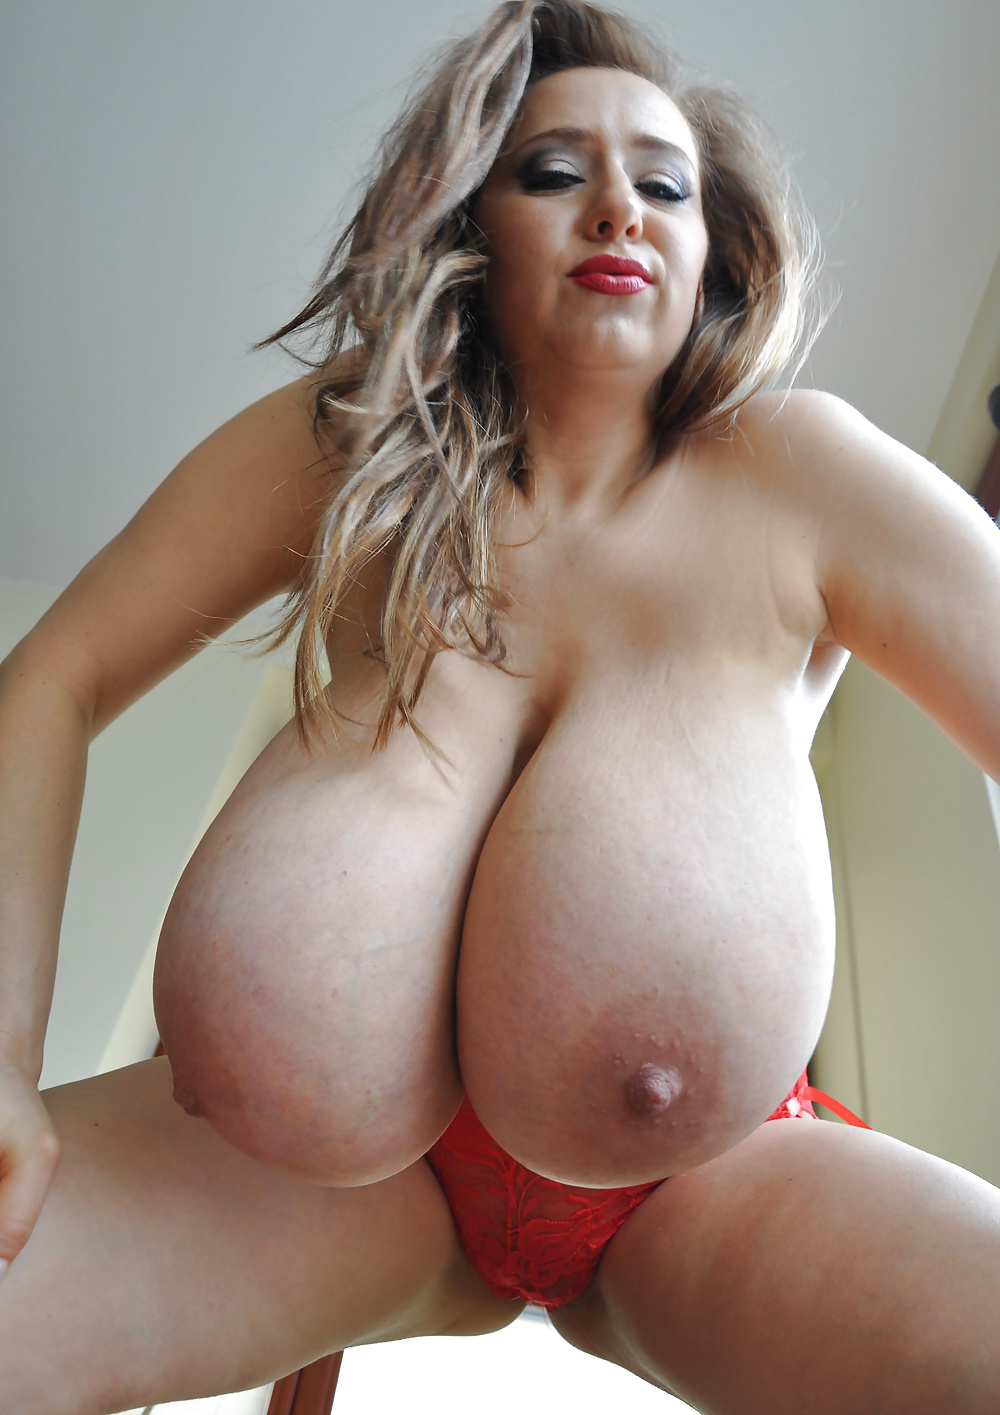 extremely-large-breasts-nude